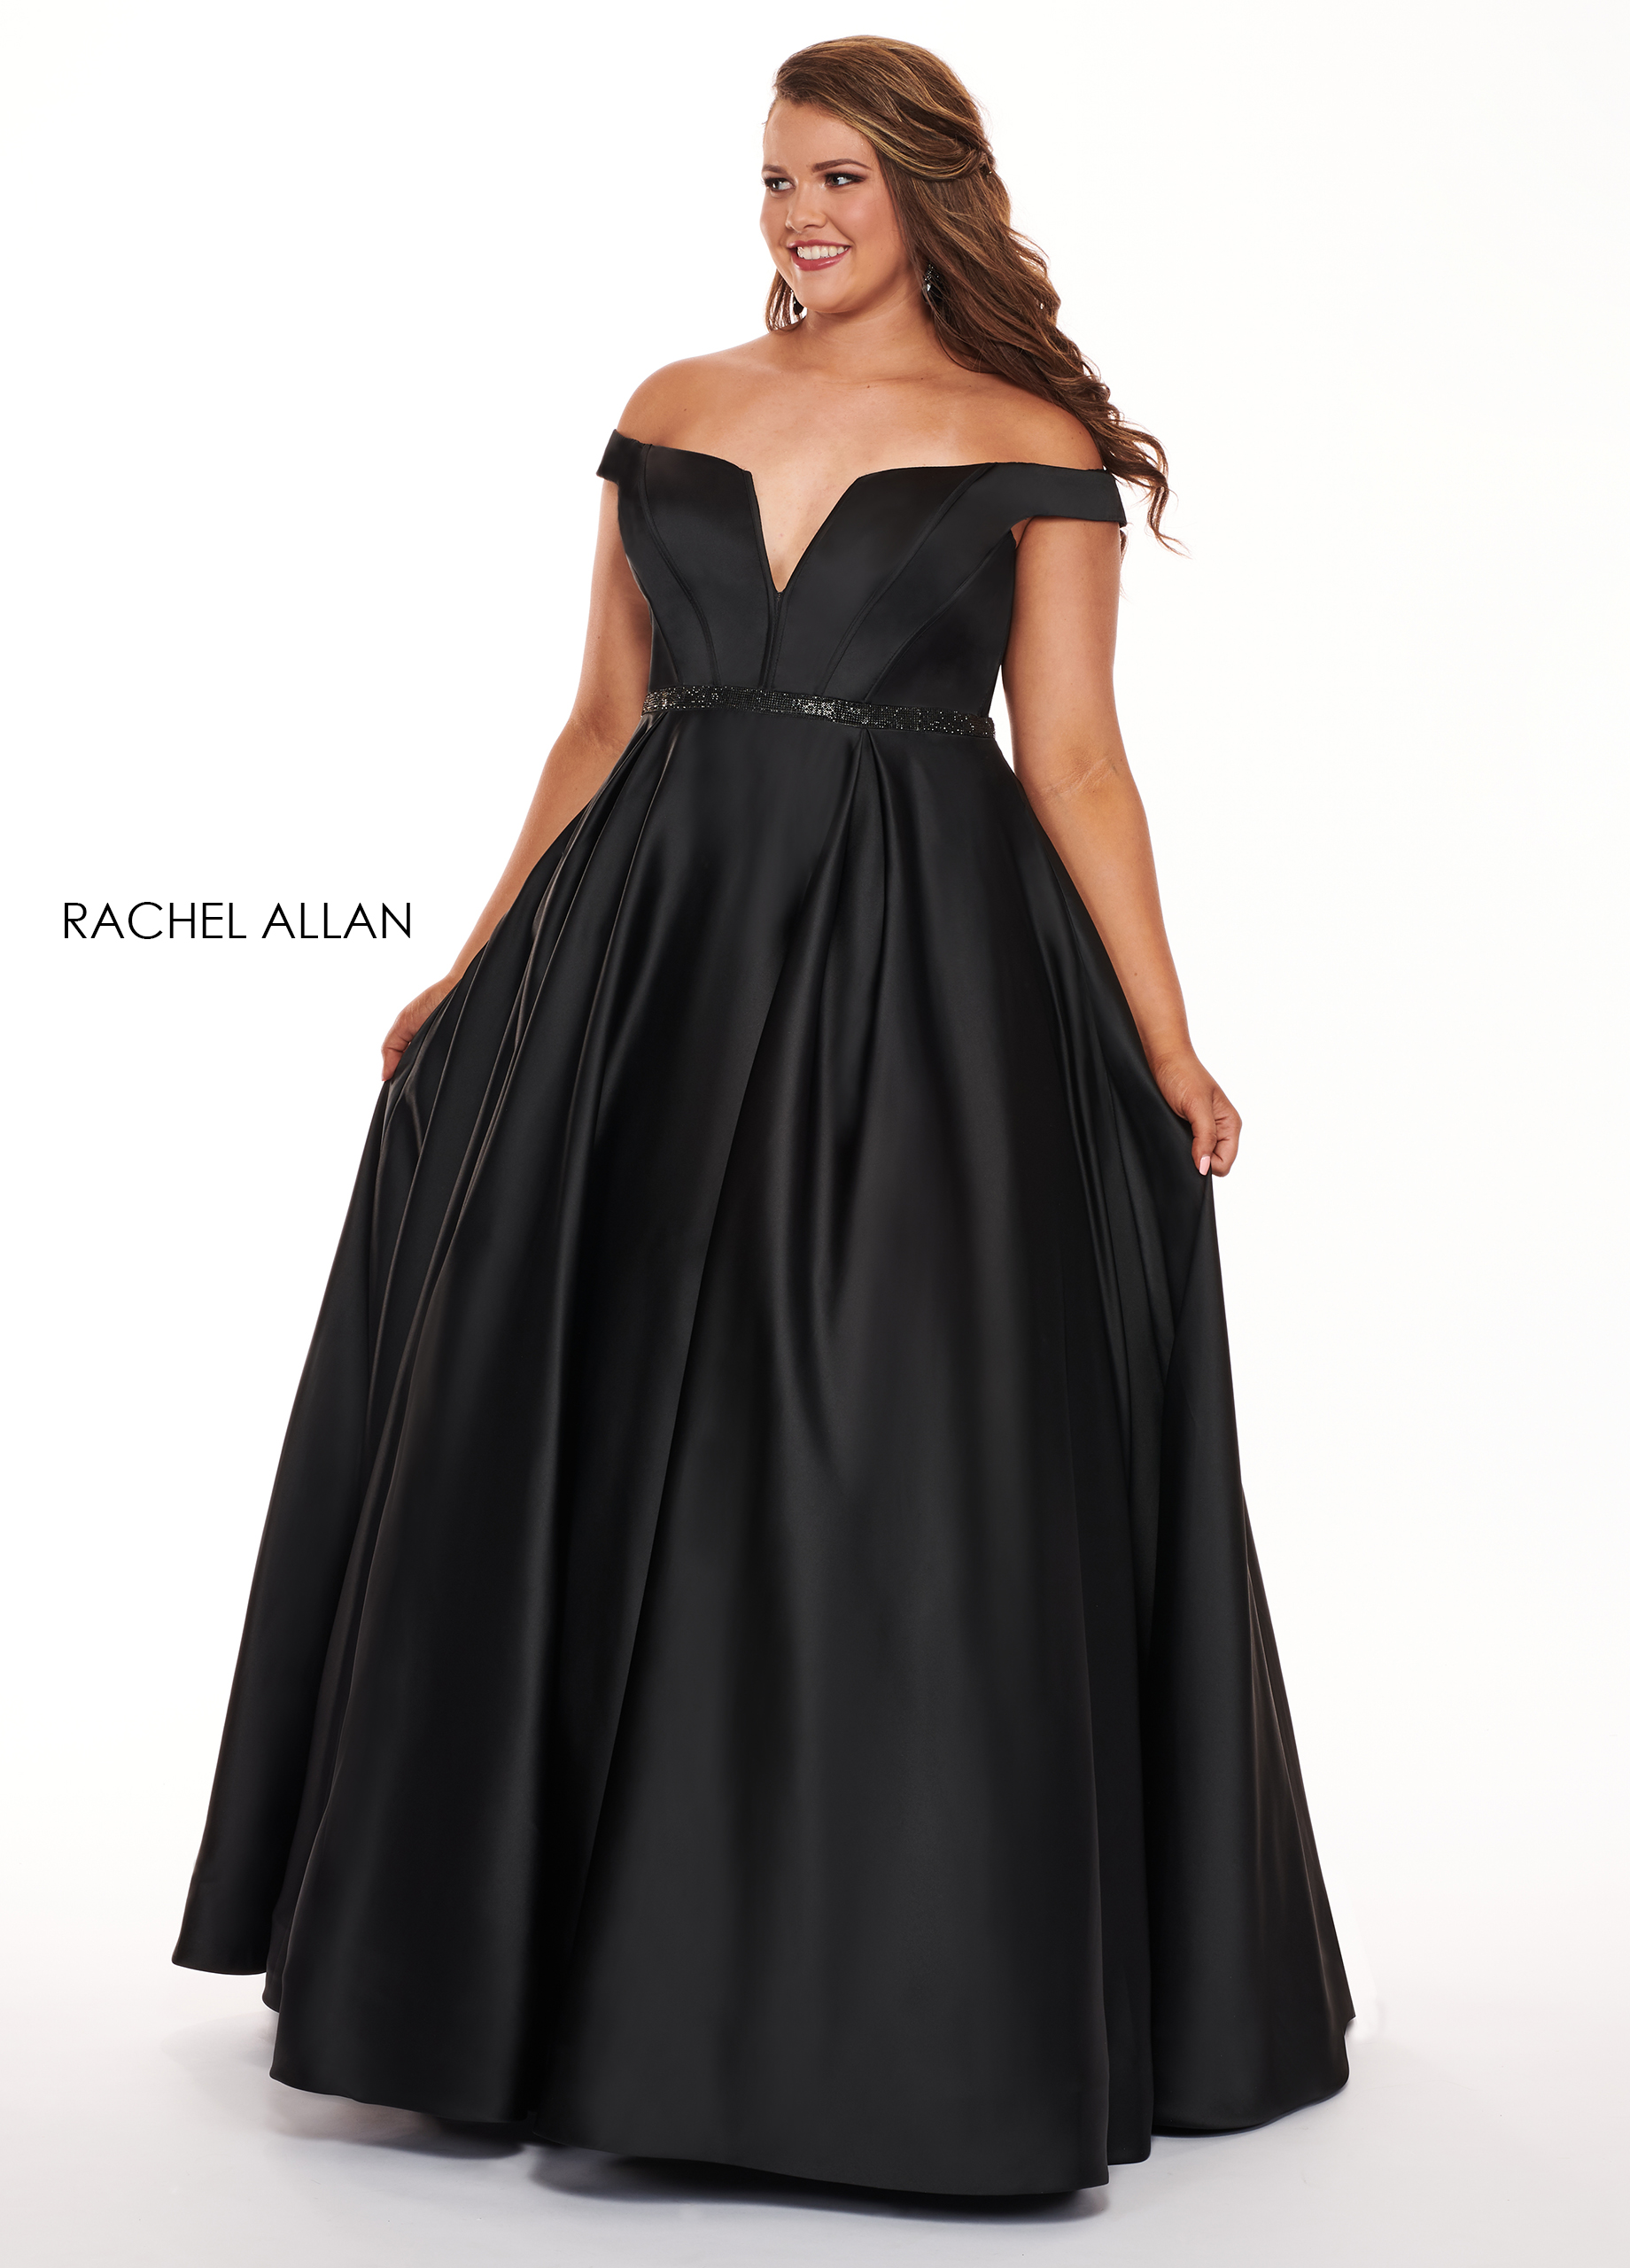 Off The Shoulder Ball Gowns Plus Size Dresses in Black Color